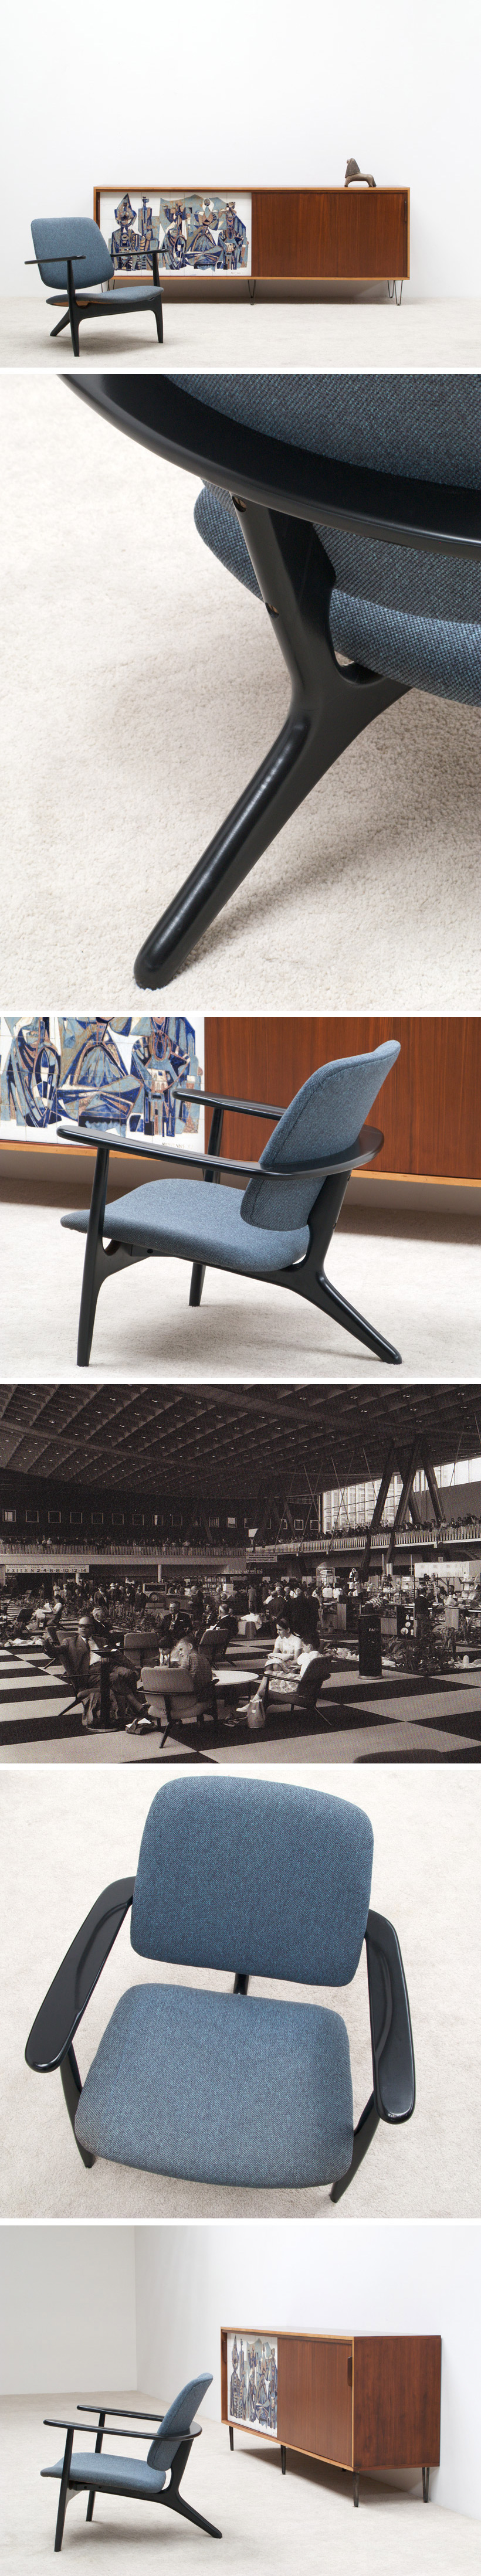 alfred hendrickx lobby lounge chair s3 lobby lounge lobbies and